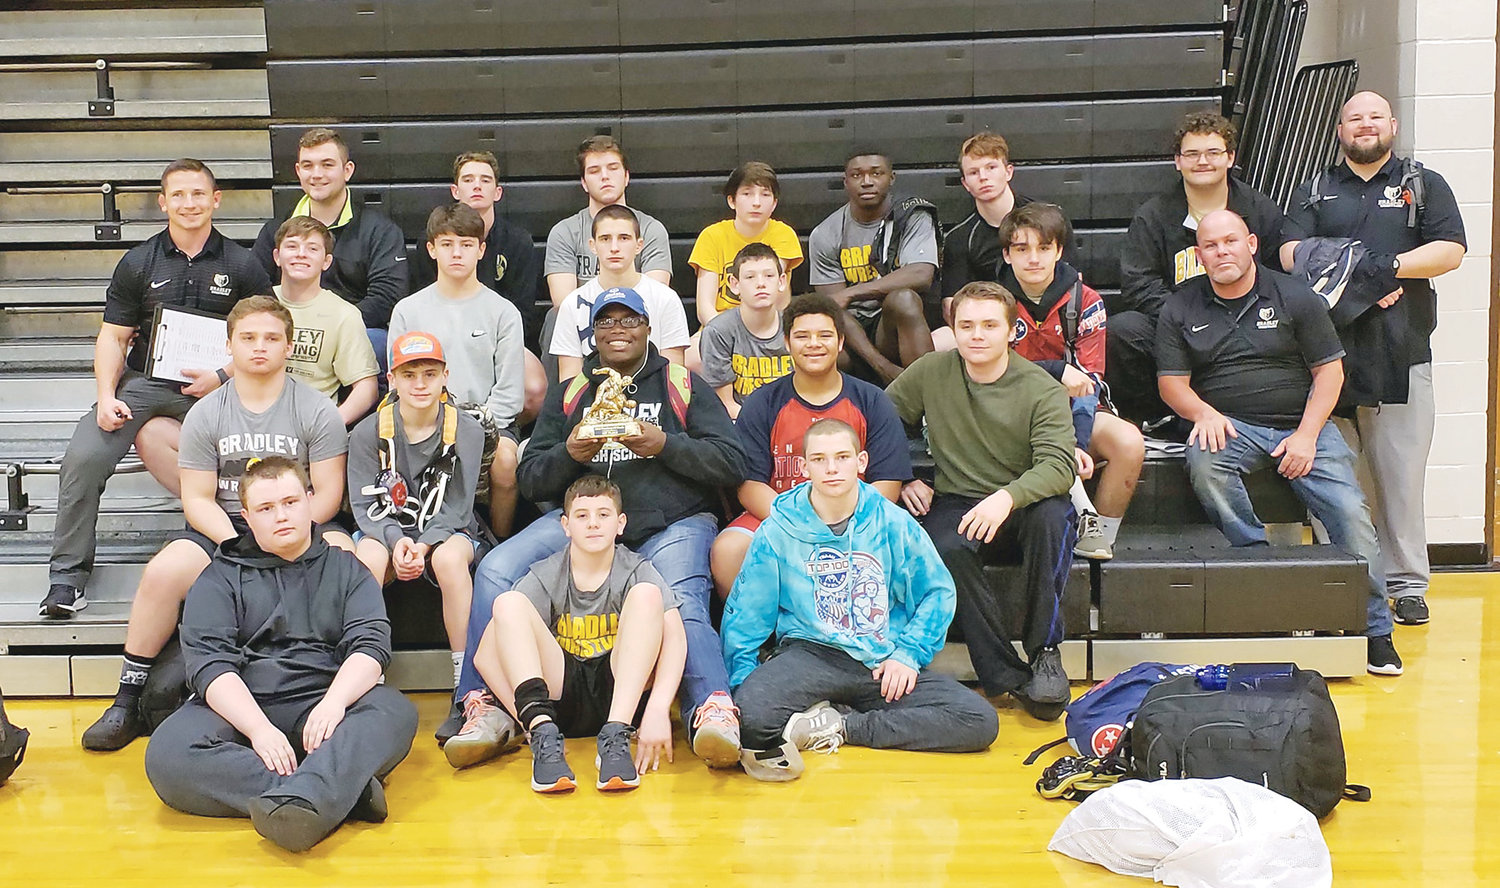 BRADLEY CENTRAL sent its junior varsity wrestling team to Hixson on Saturday for the Vandergriff Duals and the team came home with the championship trophy, defeating five varsity squads in the process.